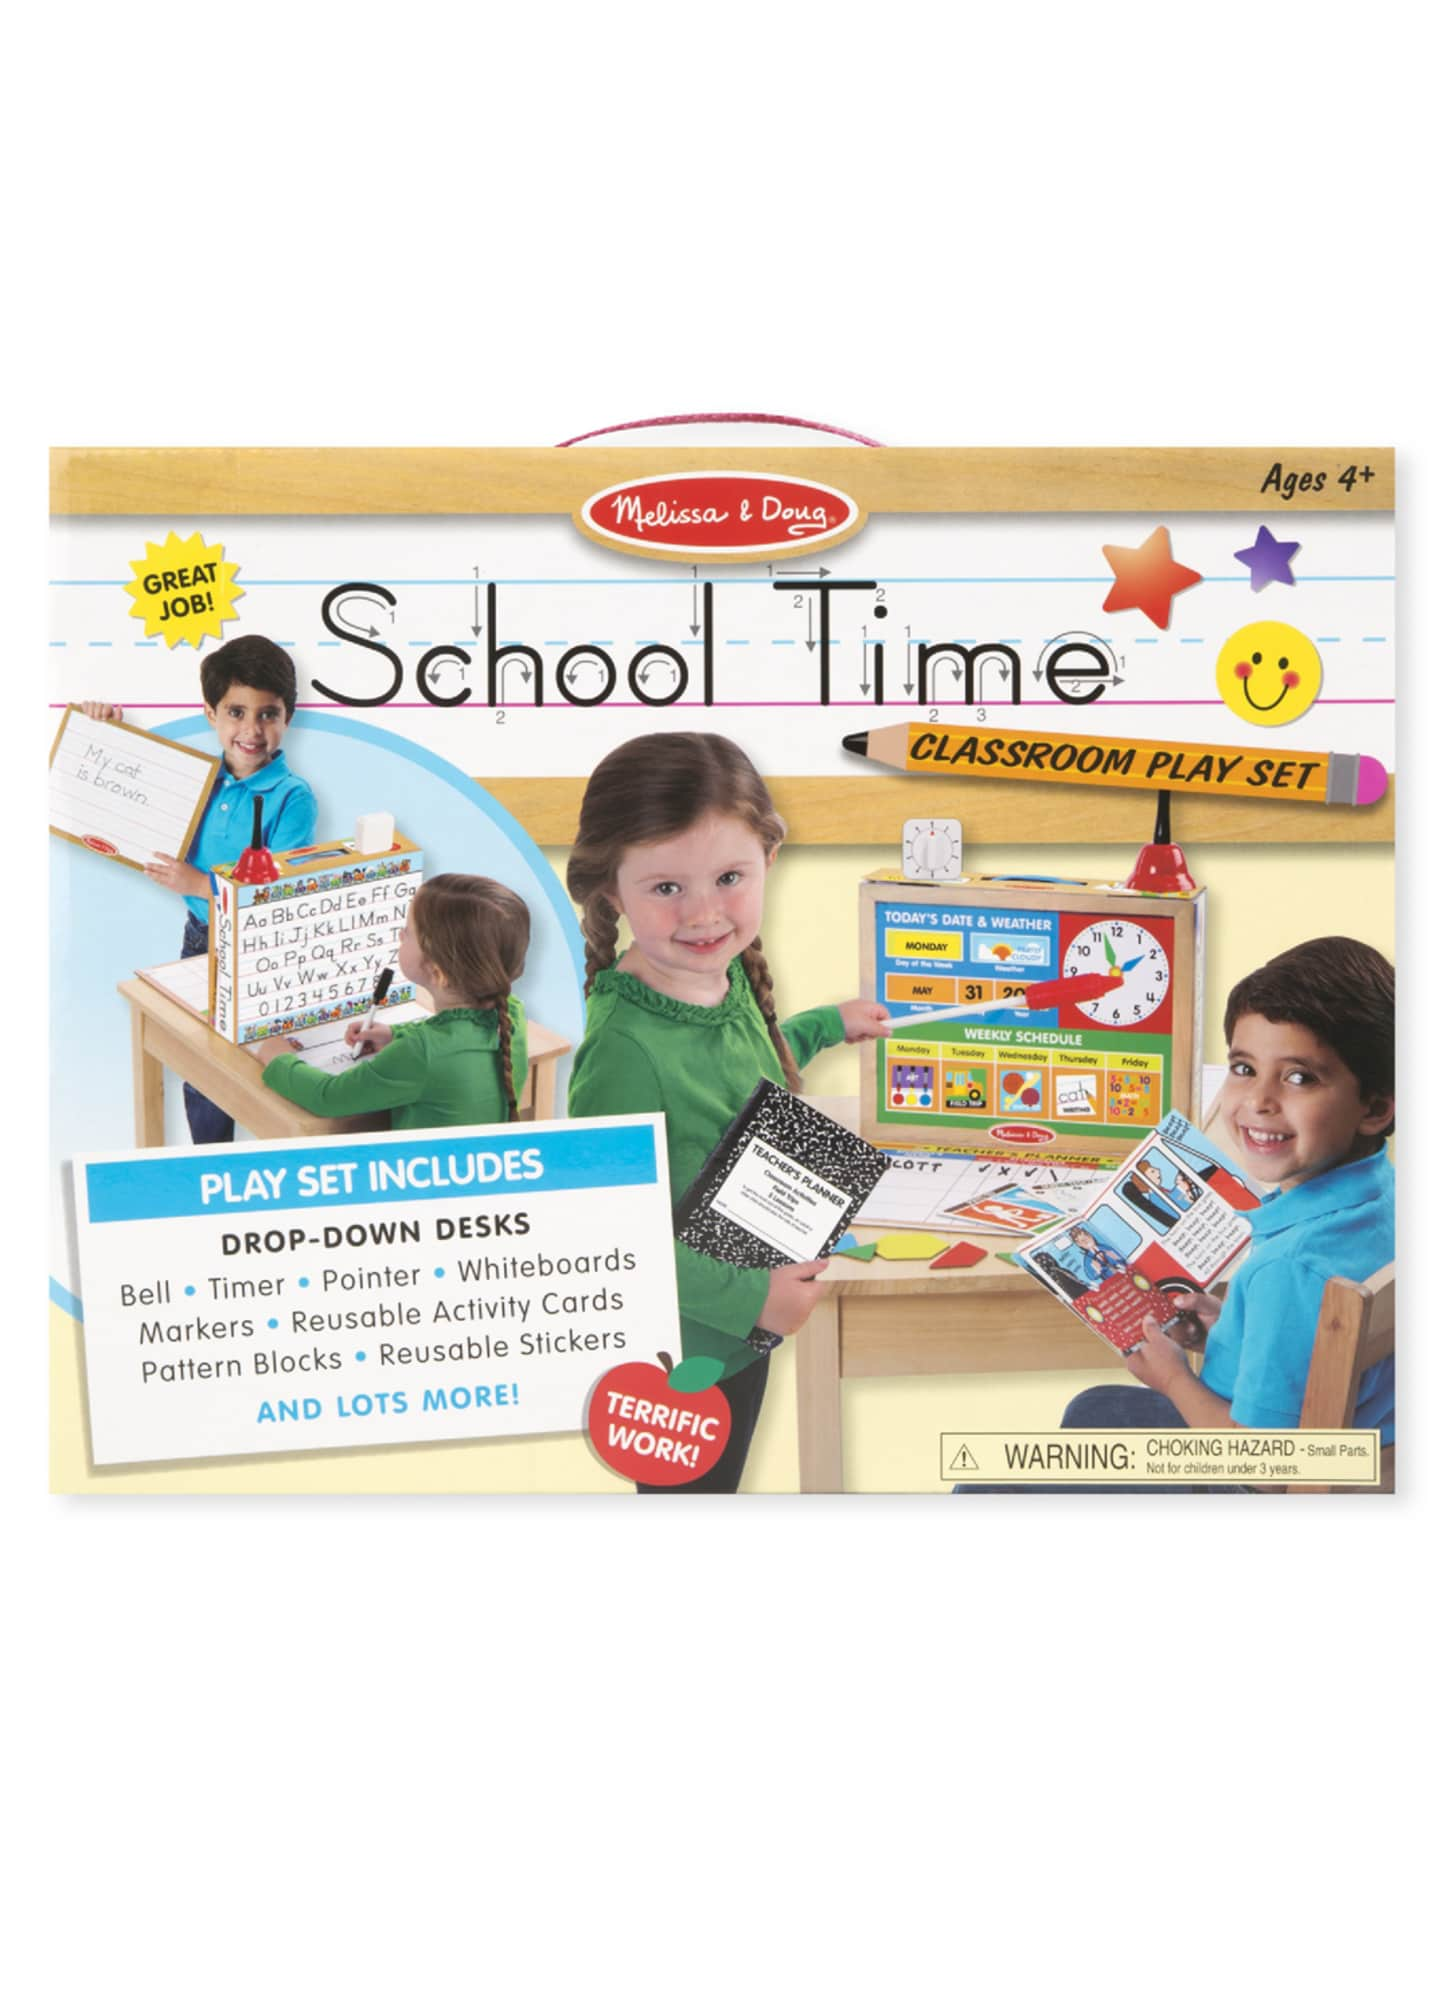 Image 2 of 2: School Time Classroom Play Set